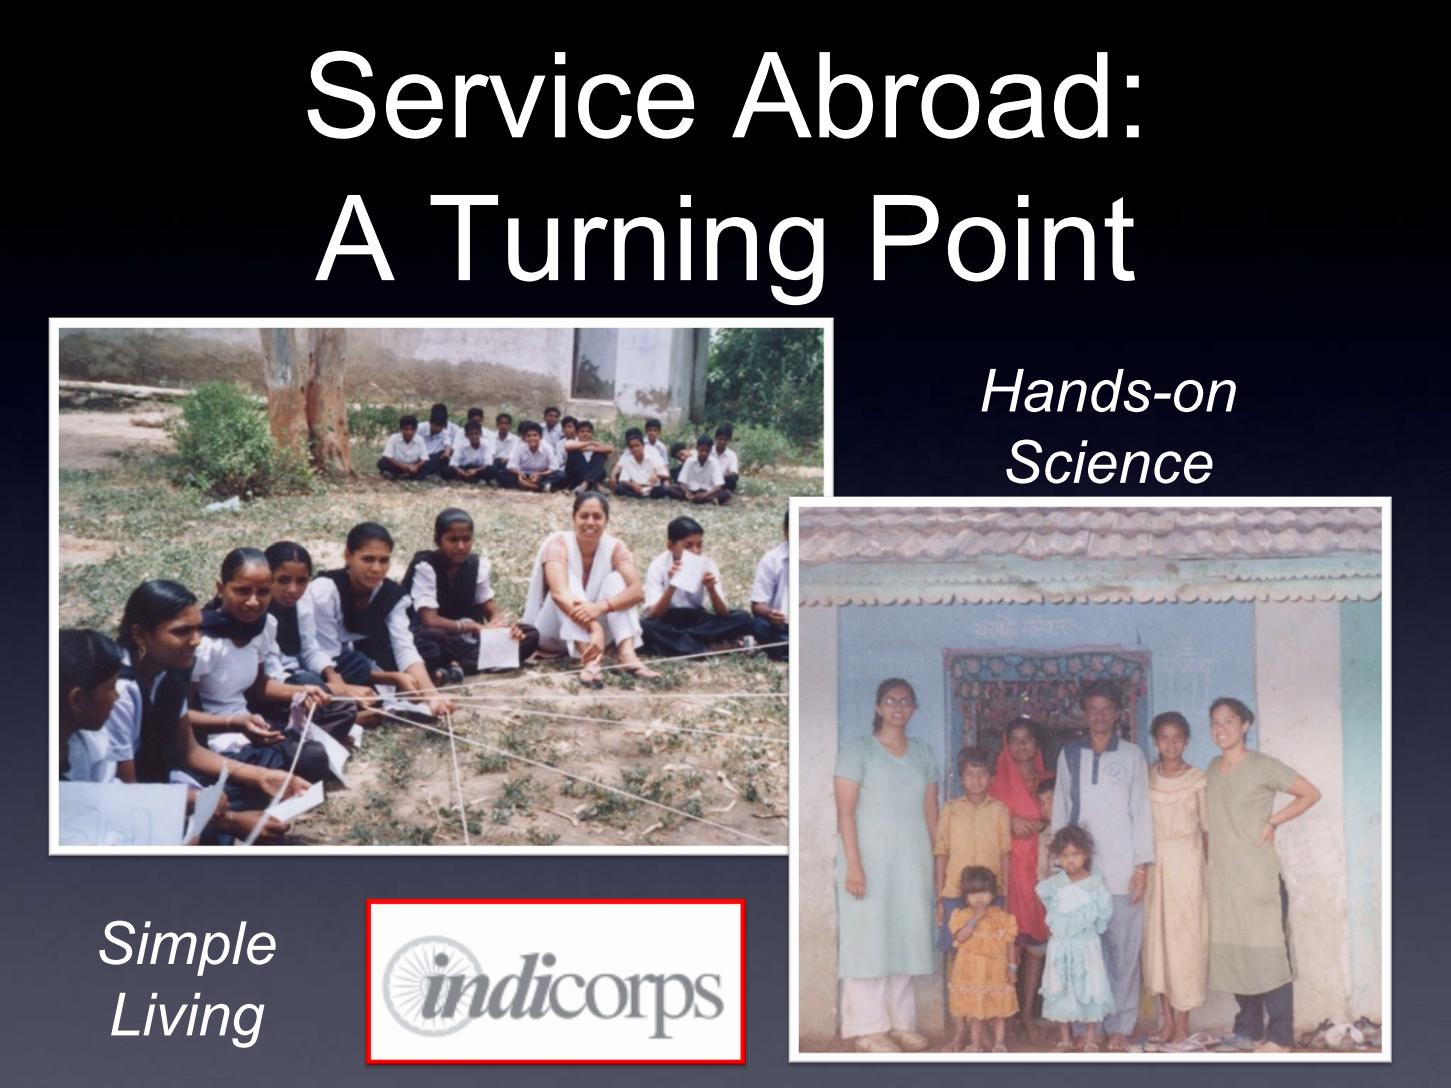 Service Abroad: A Turning Point